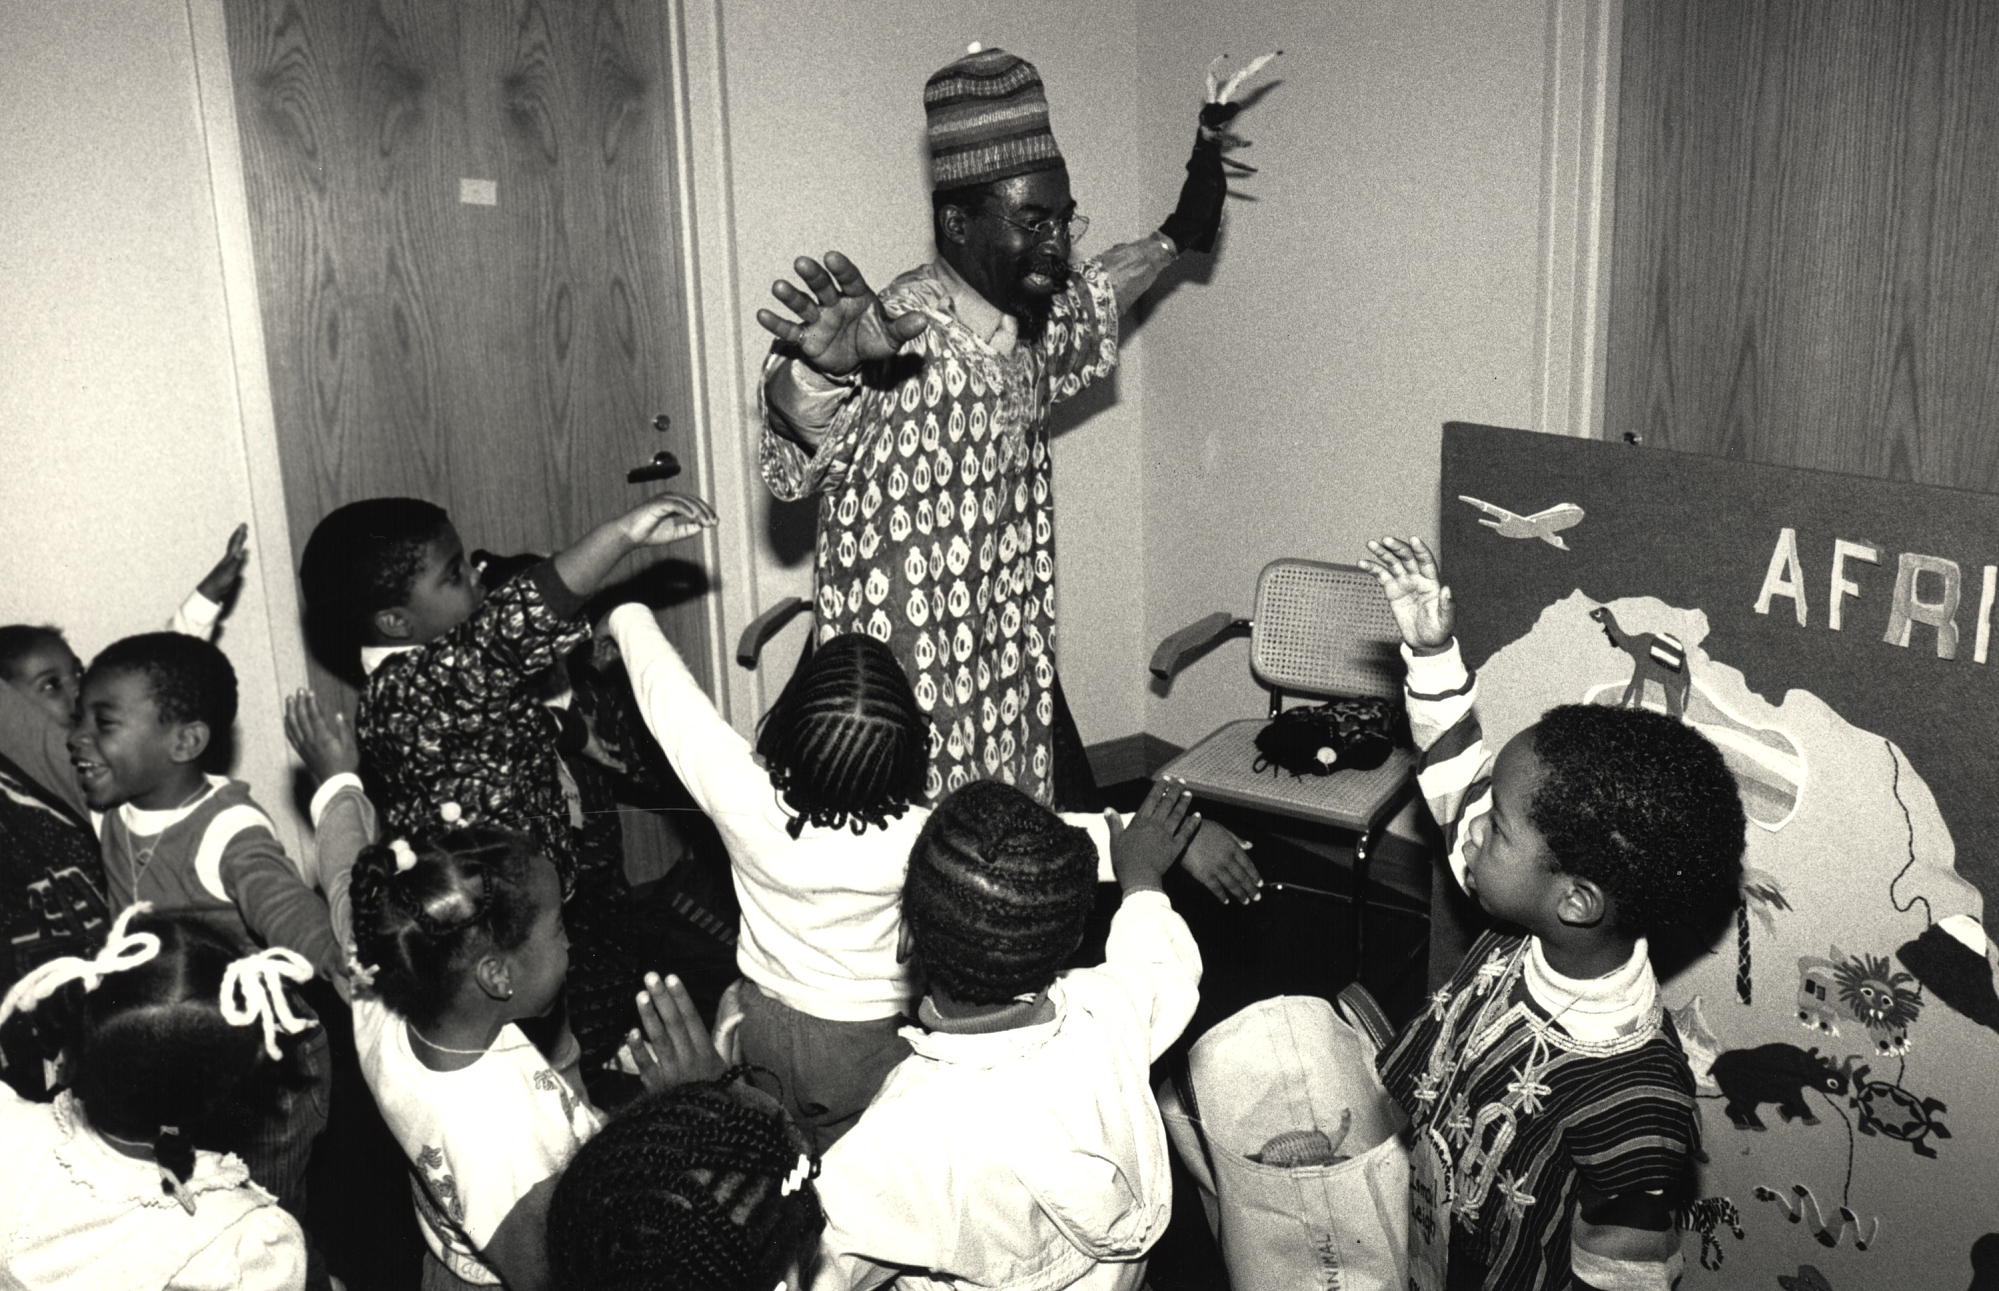 Volunteer docent James Brown, Jr. introduces preschoolers to the art of Africa at the National Museum of African Art (NMAfA), 1988. With the help of his puppet friend Kaboundi Gazelle, Brown helps children investigate shapes, learn games, play music and listen to folk tales.